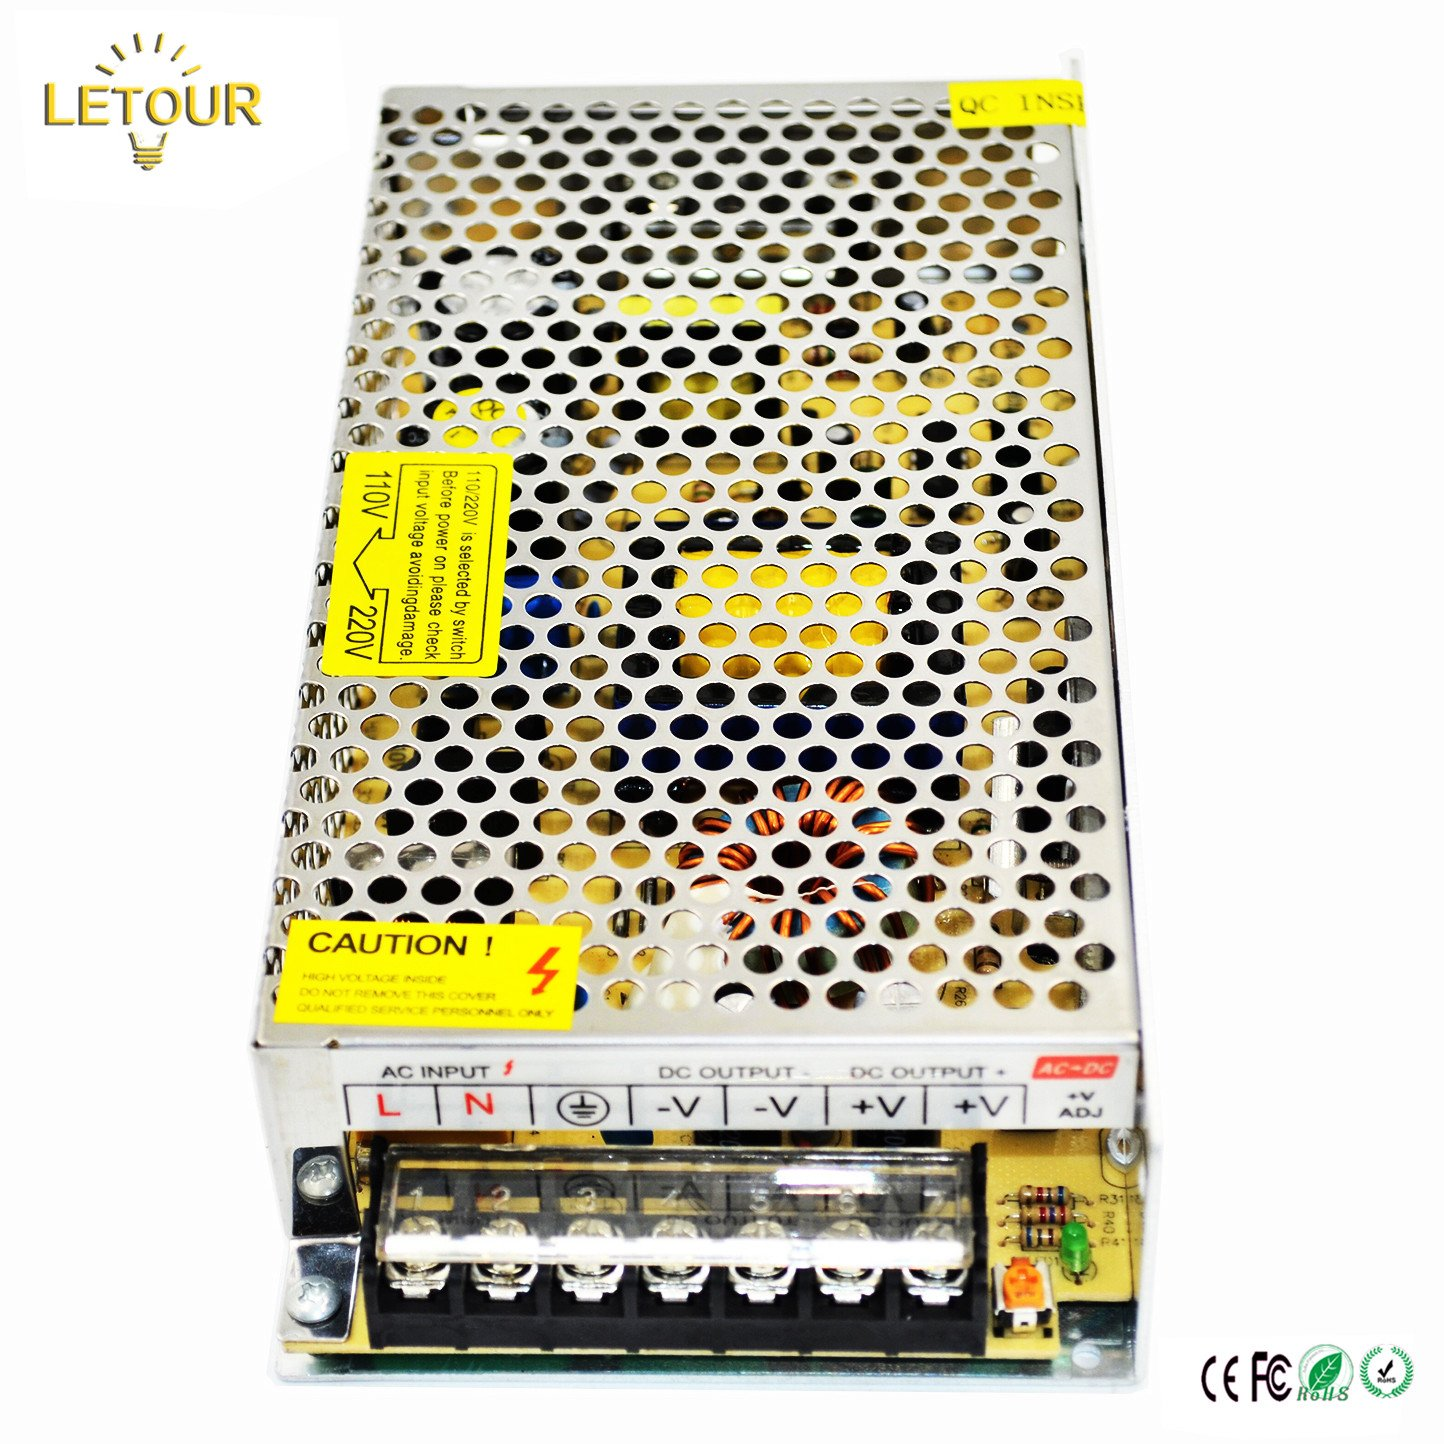 Letour Dc 5v 30a Power Supply 150w Ac 110v 220v How To Decipher The Wiring Schematic Of A 110220v Converter 5volt 150 Watt Adapter Led For Lightingled Stripcctv